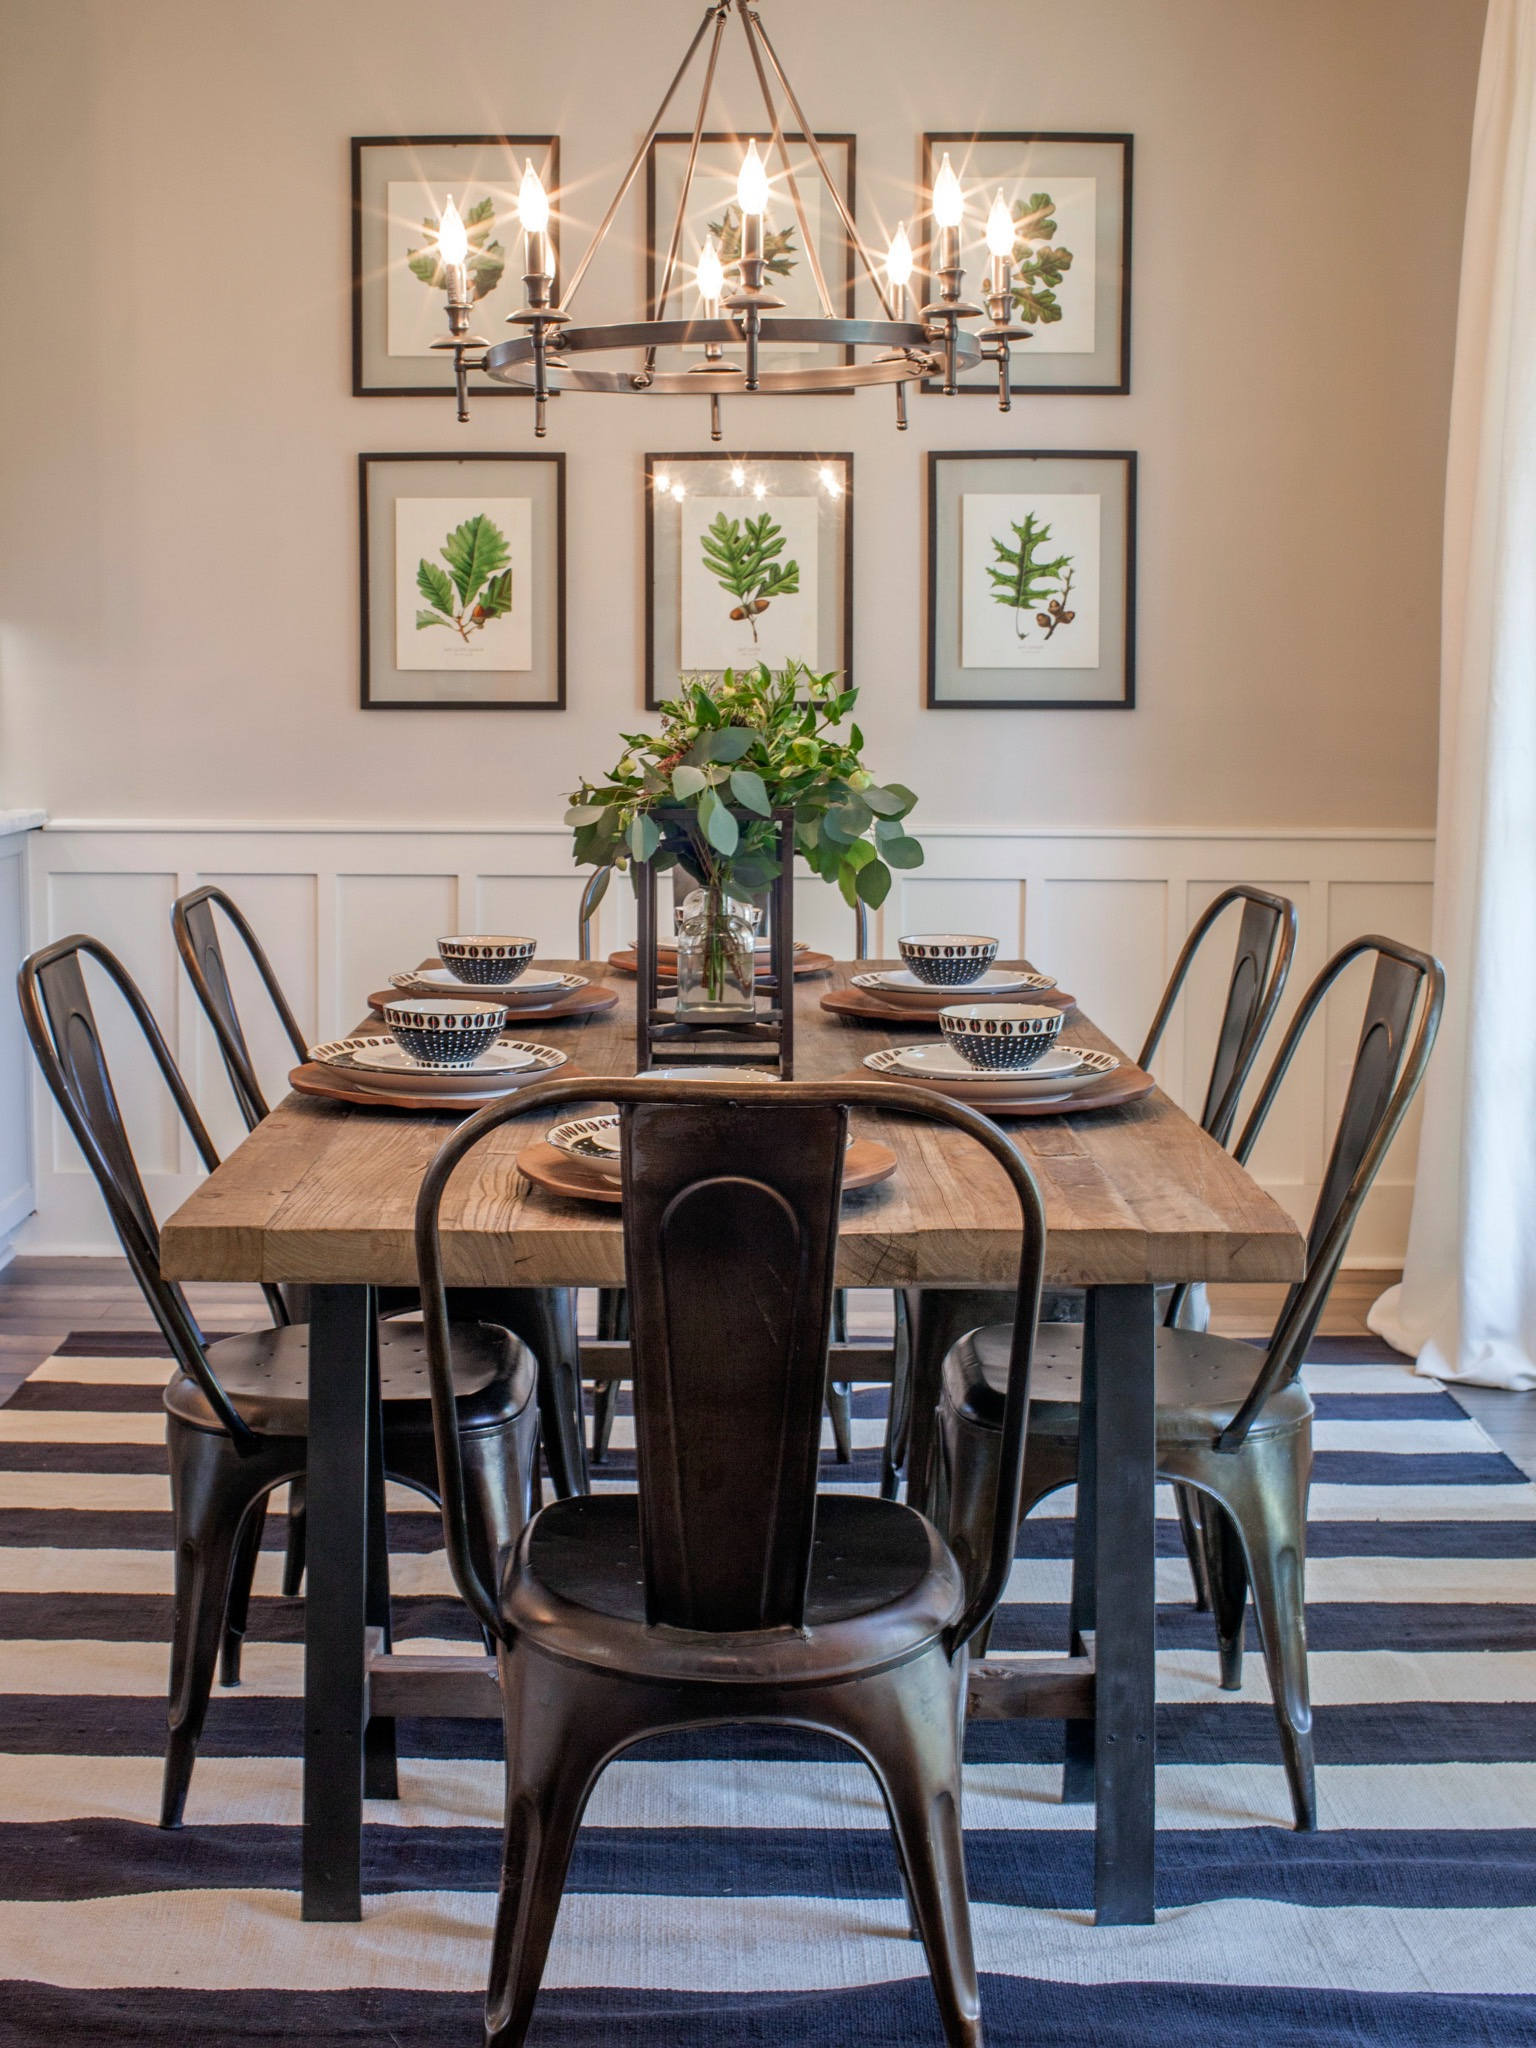 Rustic Modern Dining Room With Stylish And Elegant Design (Image 24 of 36)